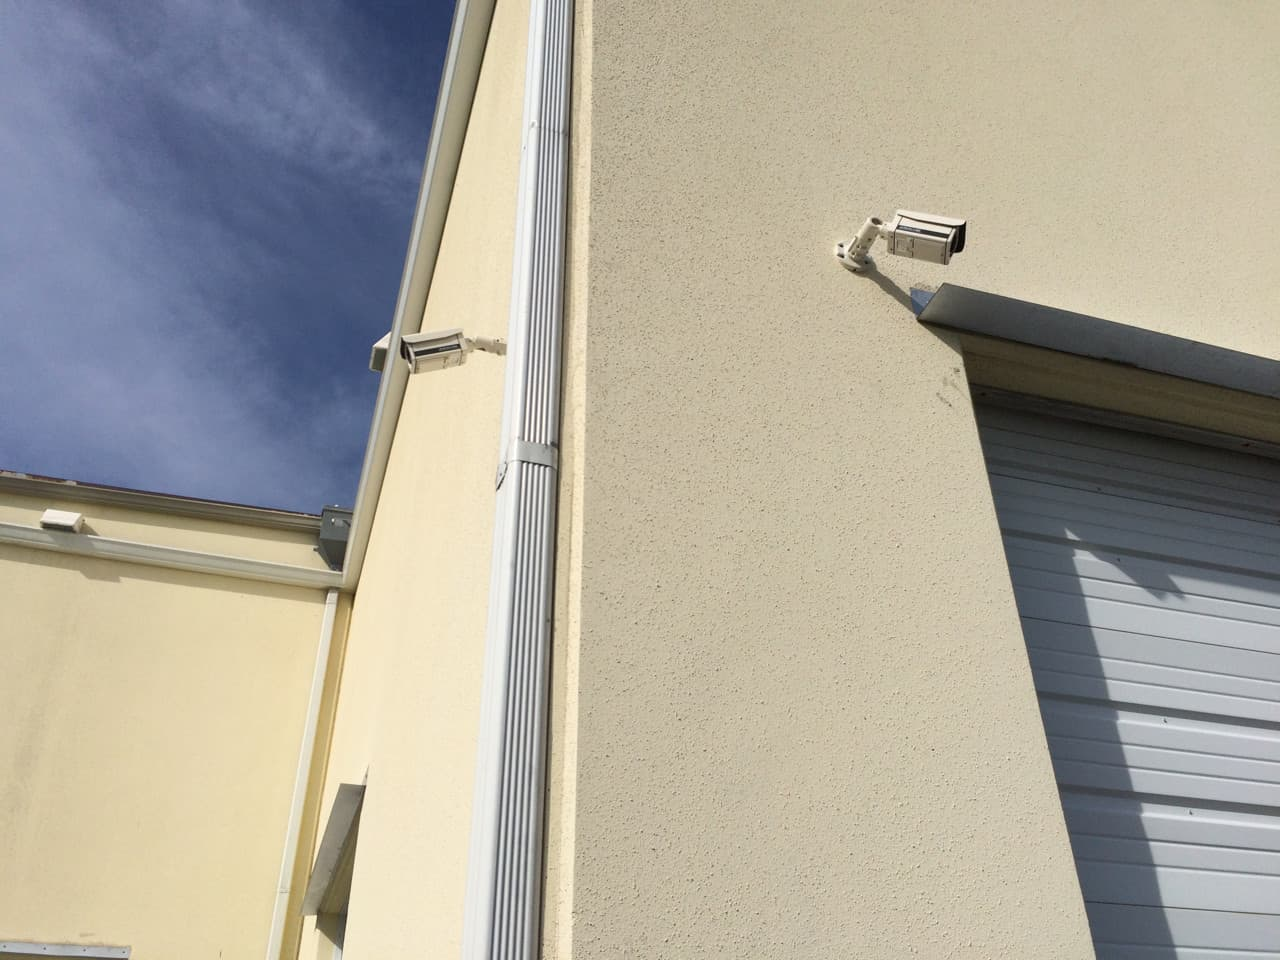 Exterior Surveillance Cameras For Home how to install an outdoor security camera picture Outdoor Surveillance Camera Installed On Warehouse